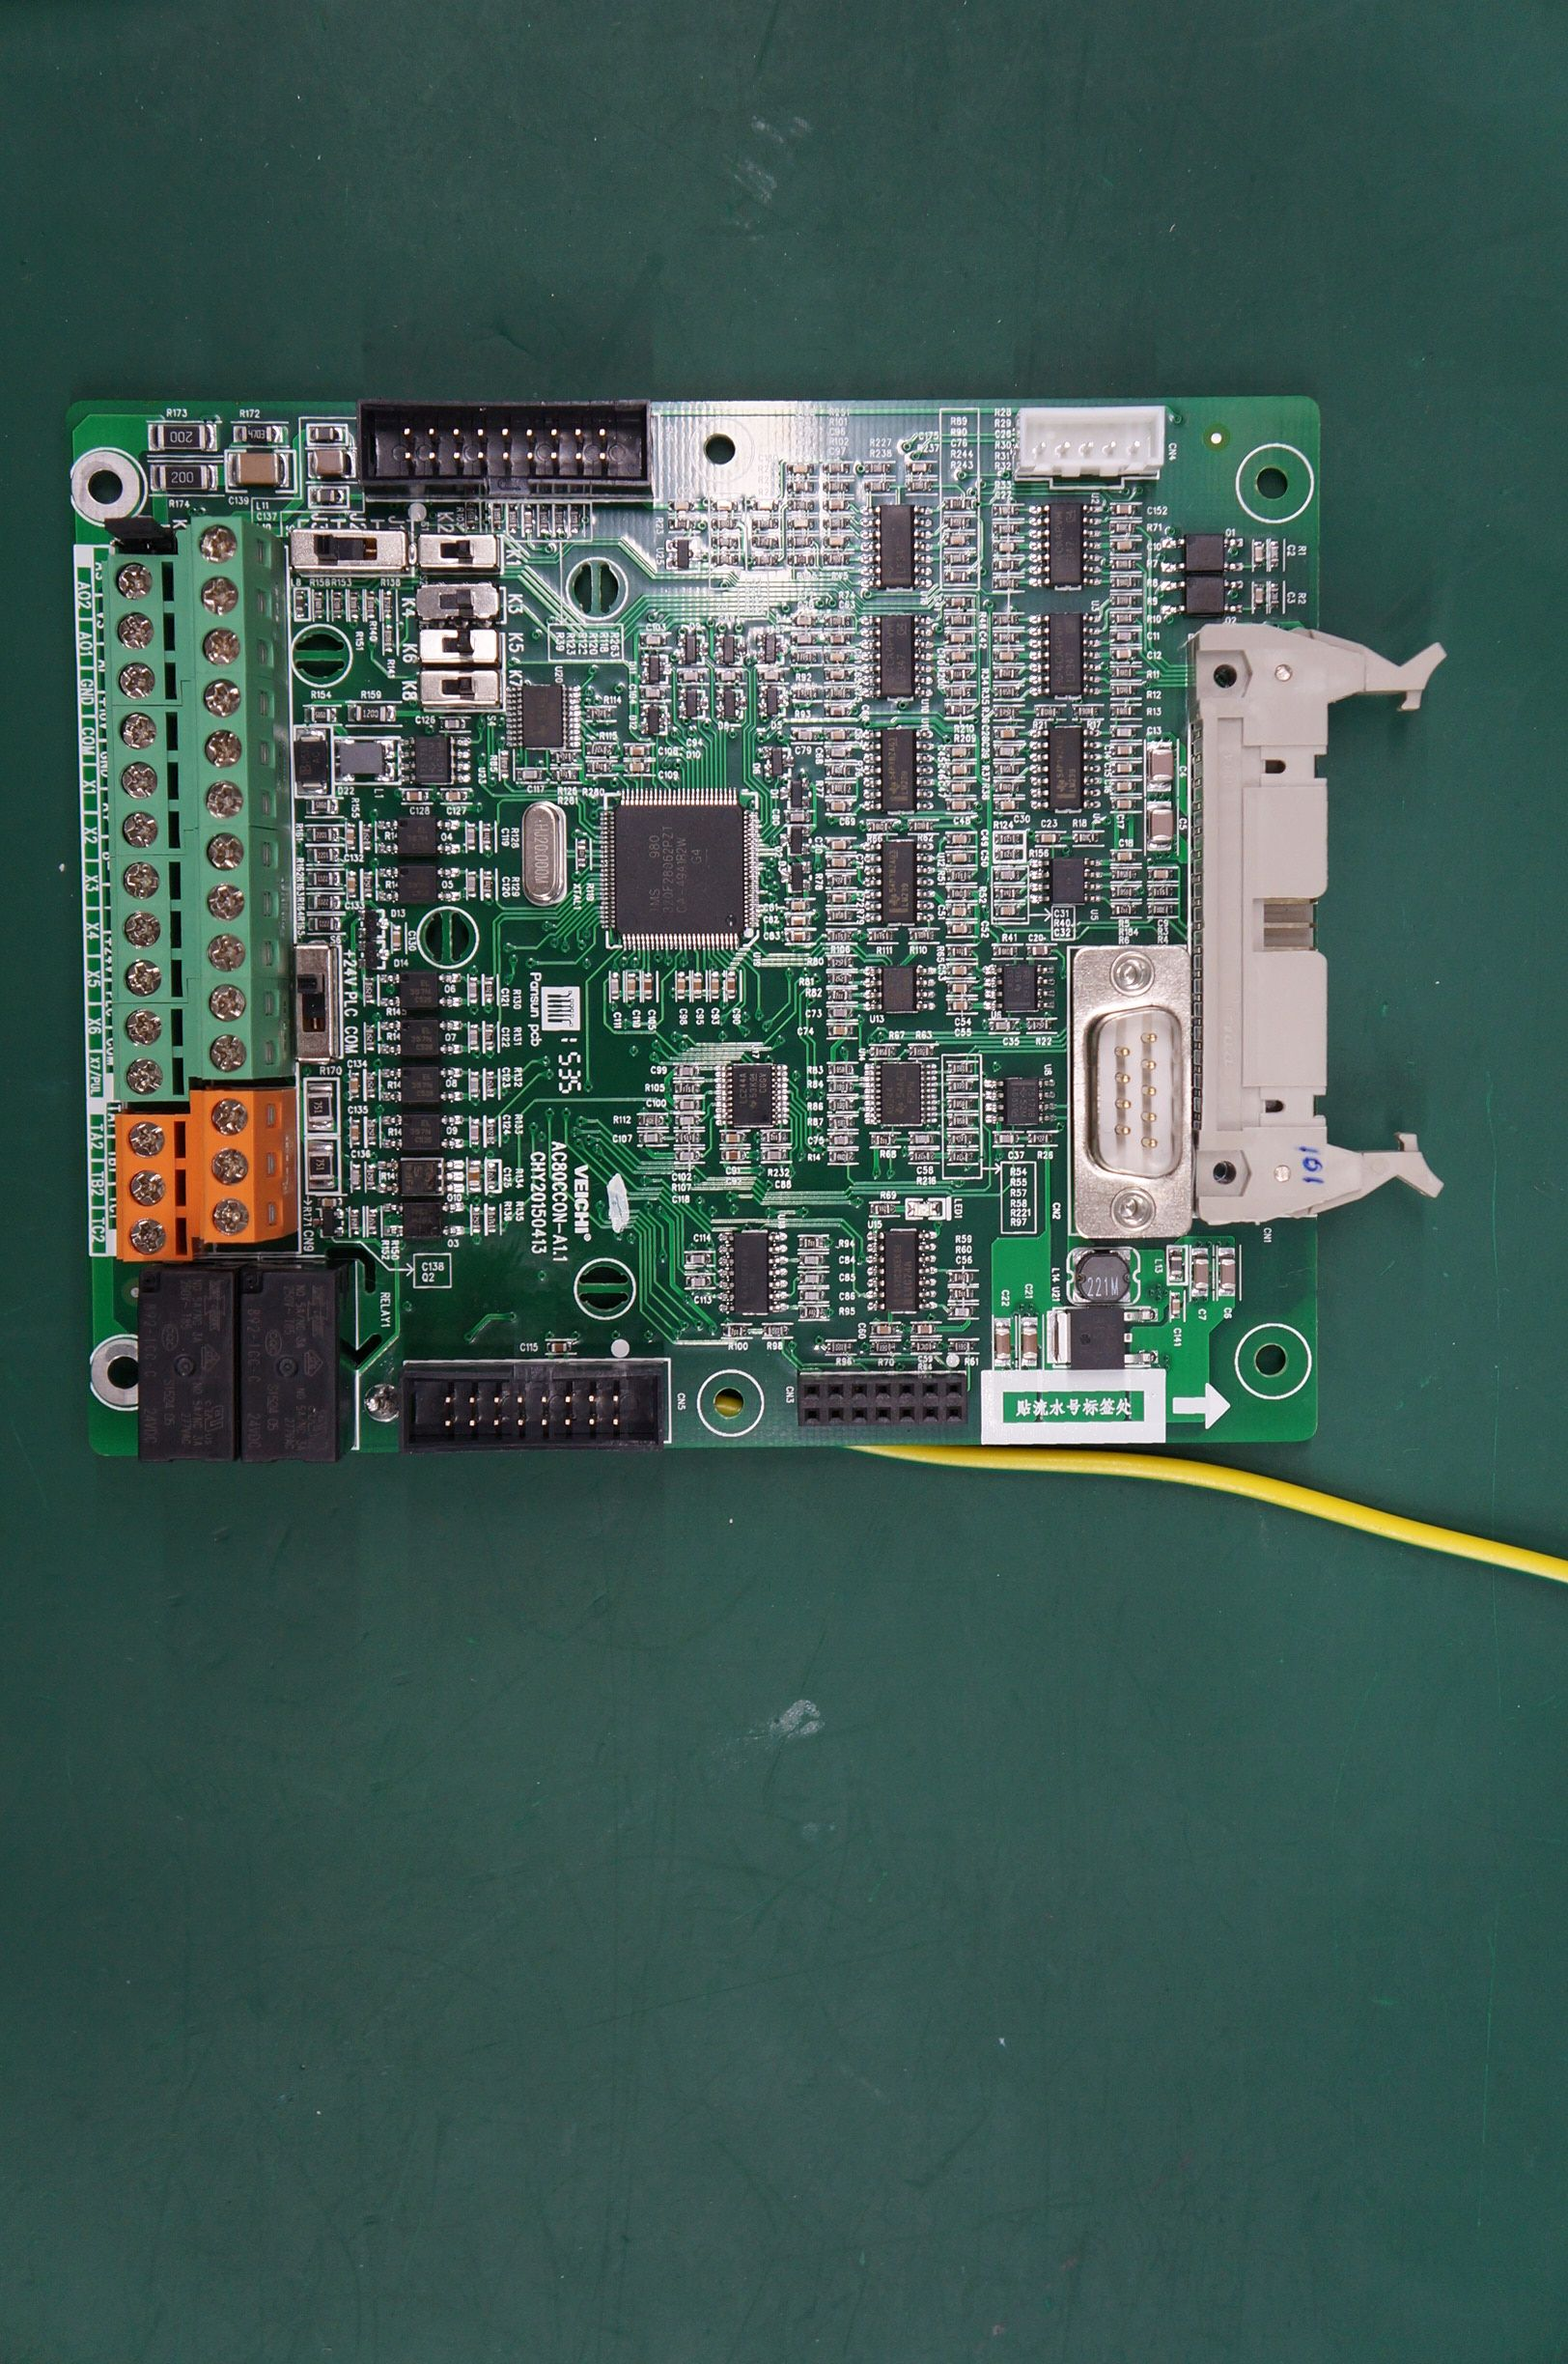 Pin By Veichi Global On Variable Frequency Drives Pinterest Technology Electric Circuit And Html The Control Board Of Ac70 General Purpose Sensorless Vector Inverter Http